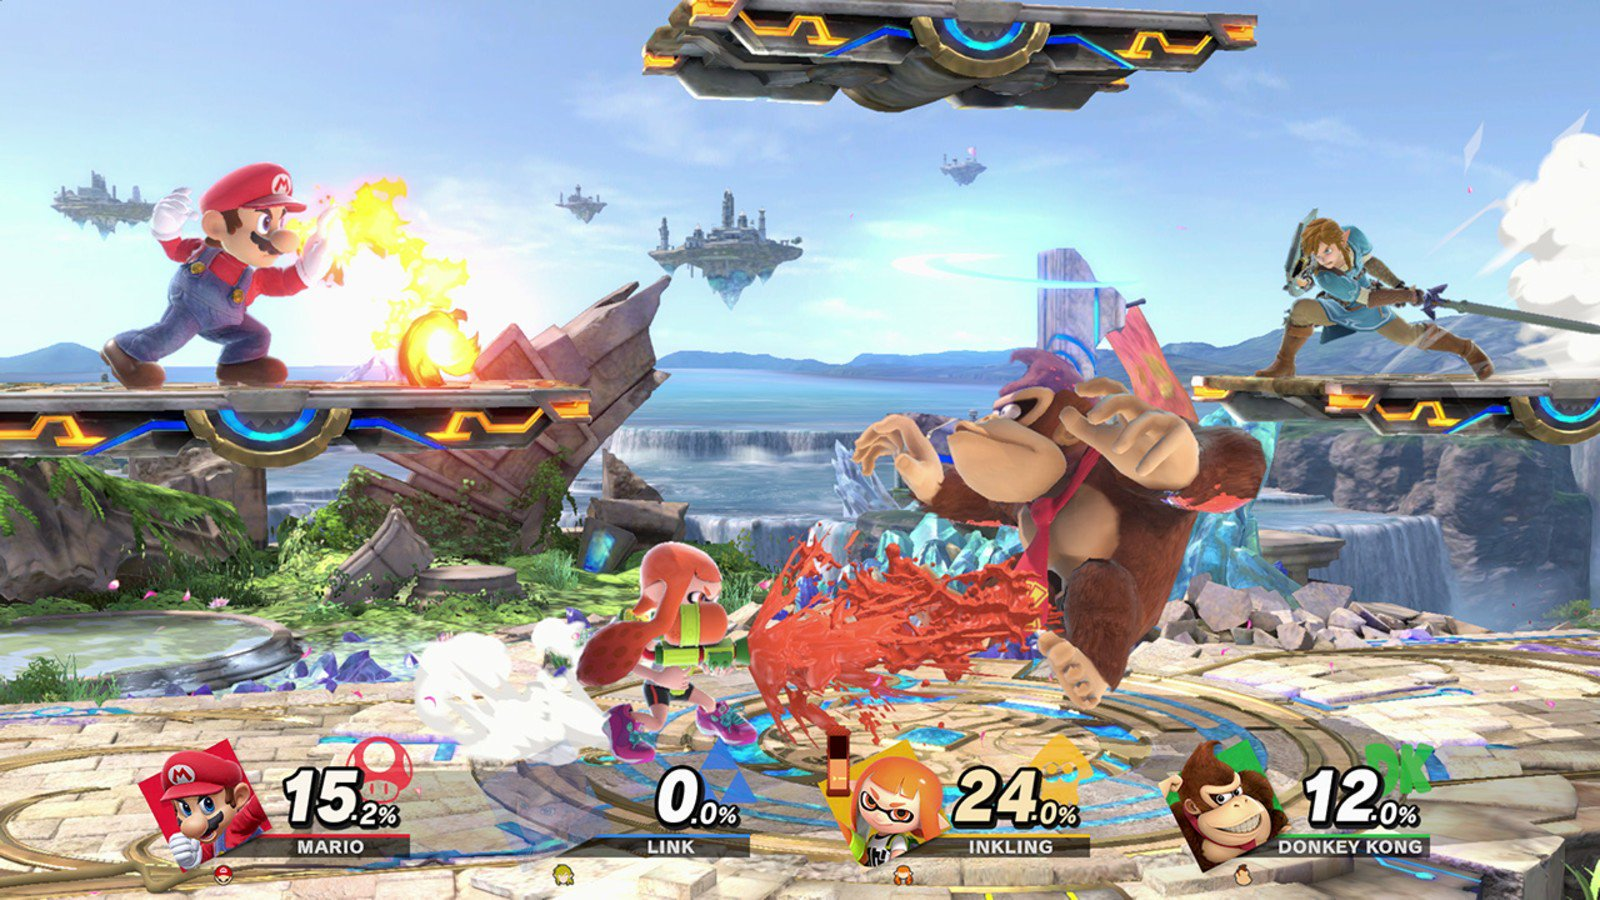 Super Smash Bros. Ultimate for the Nintendo Switch.